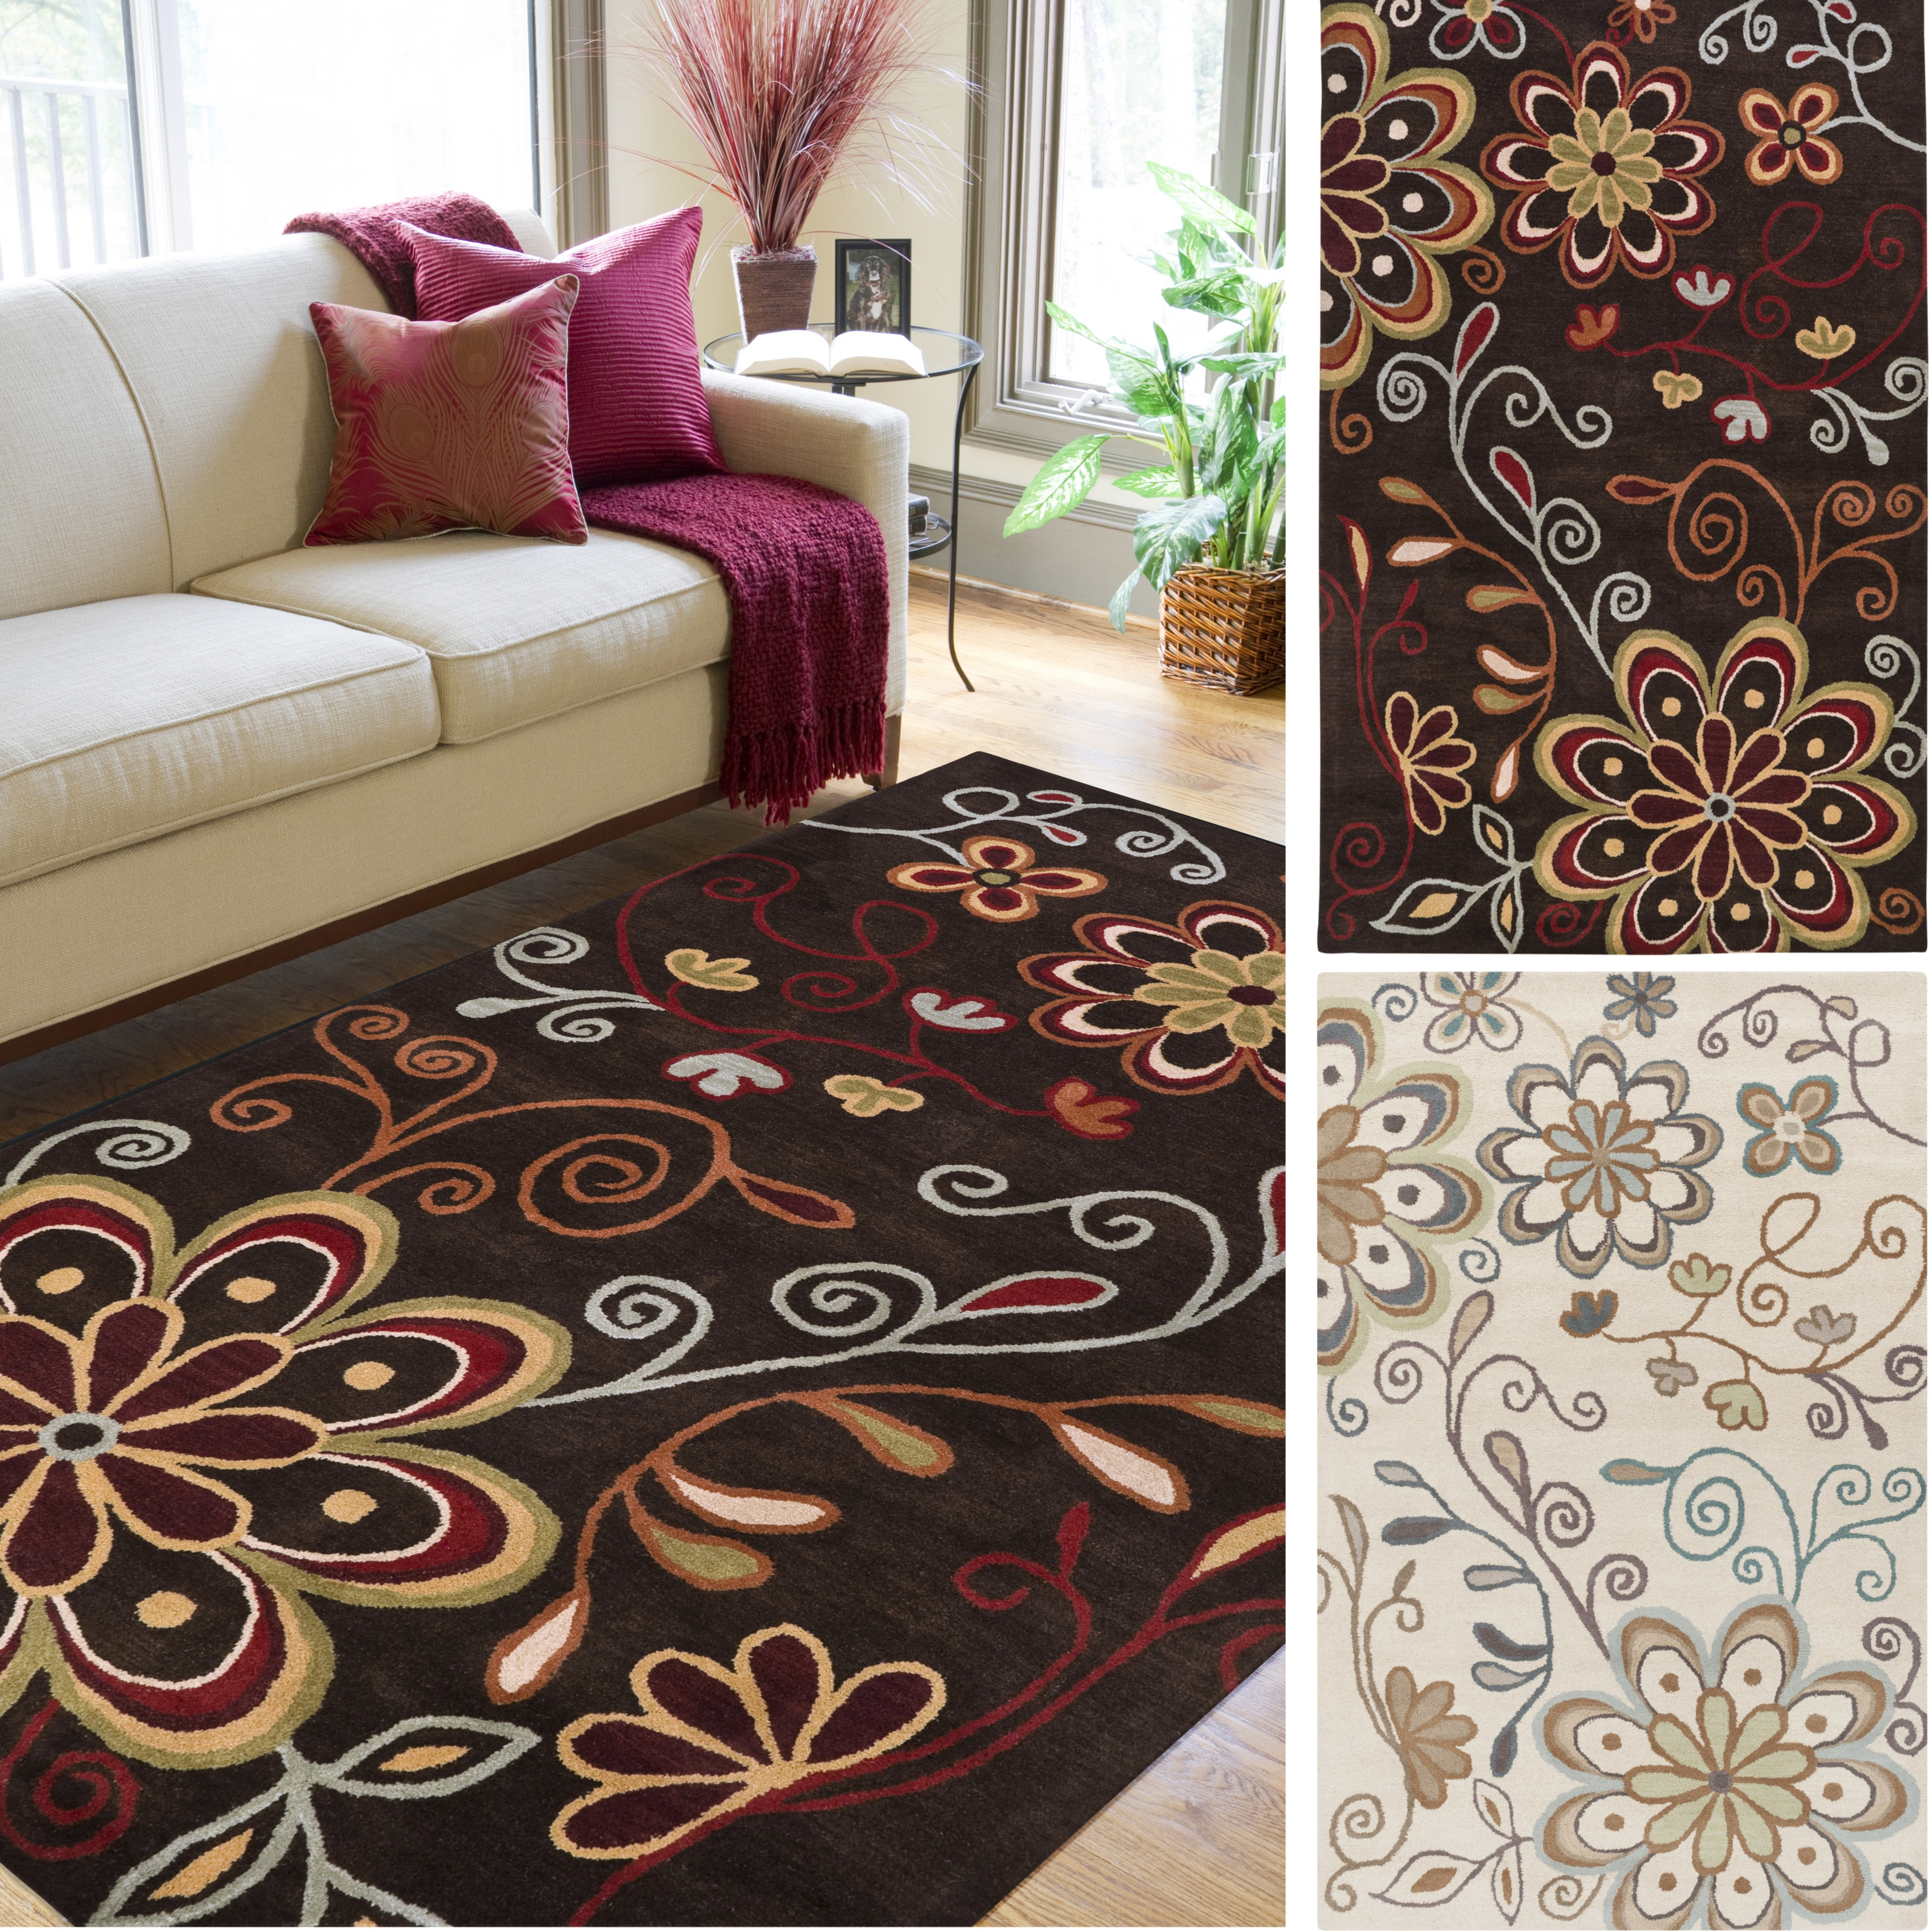 Hand-tufted Peacock Floral Runner Wool Area Rug (3' x 12'...